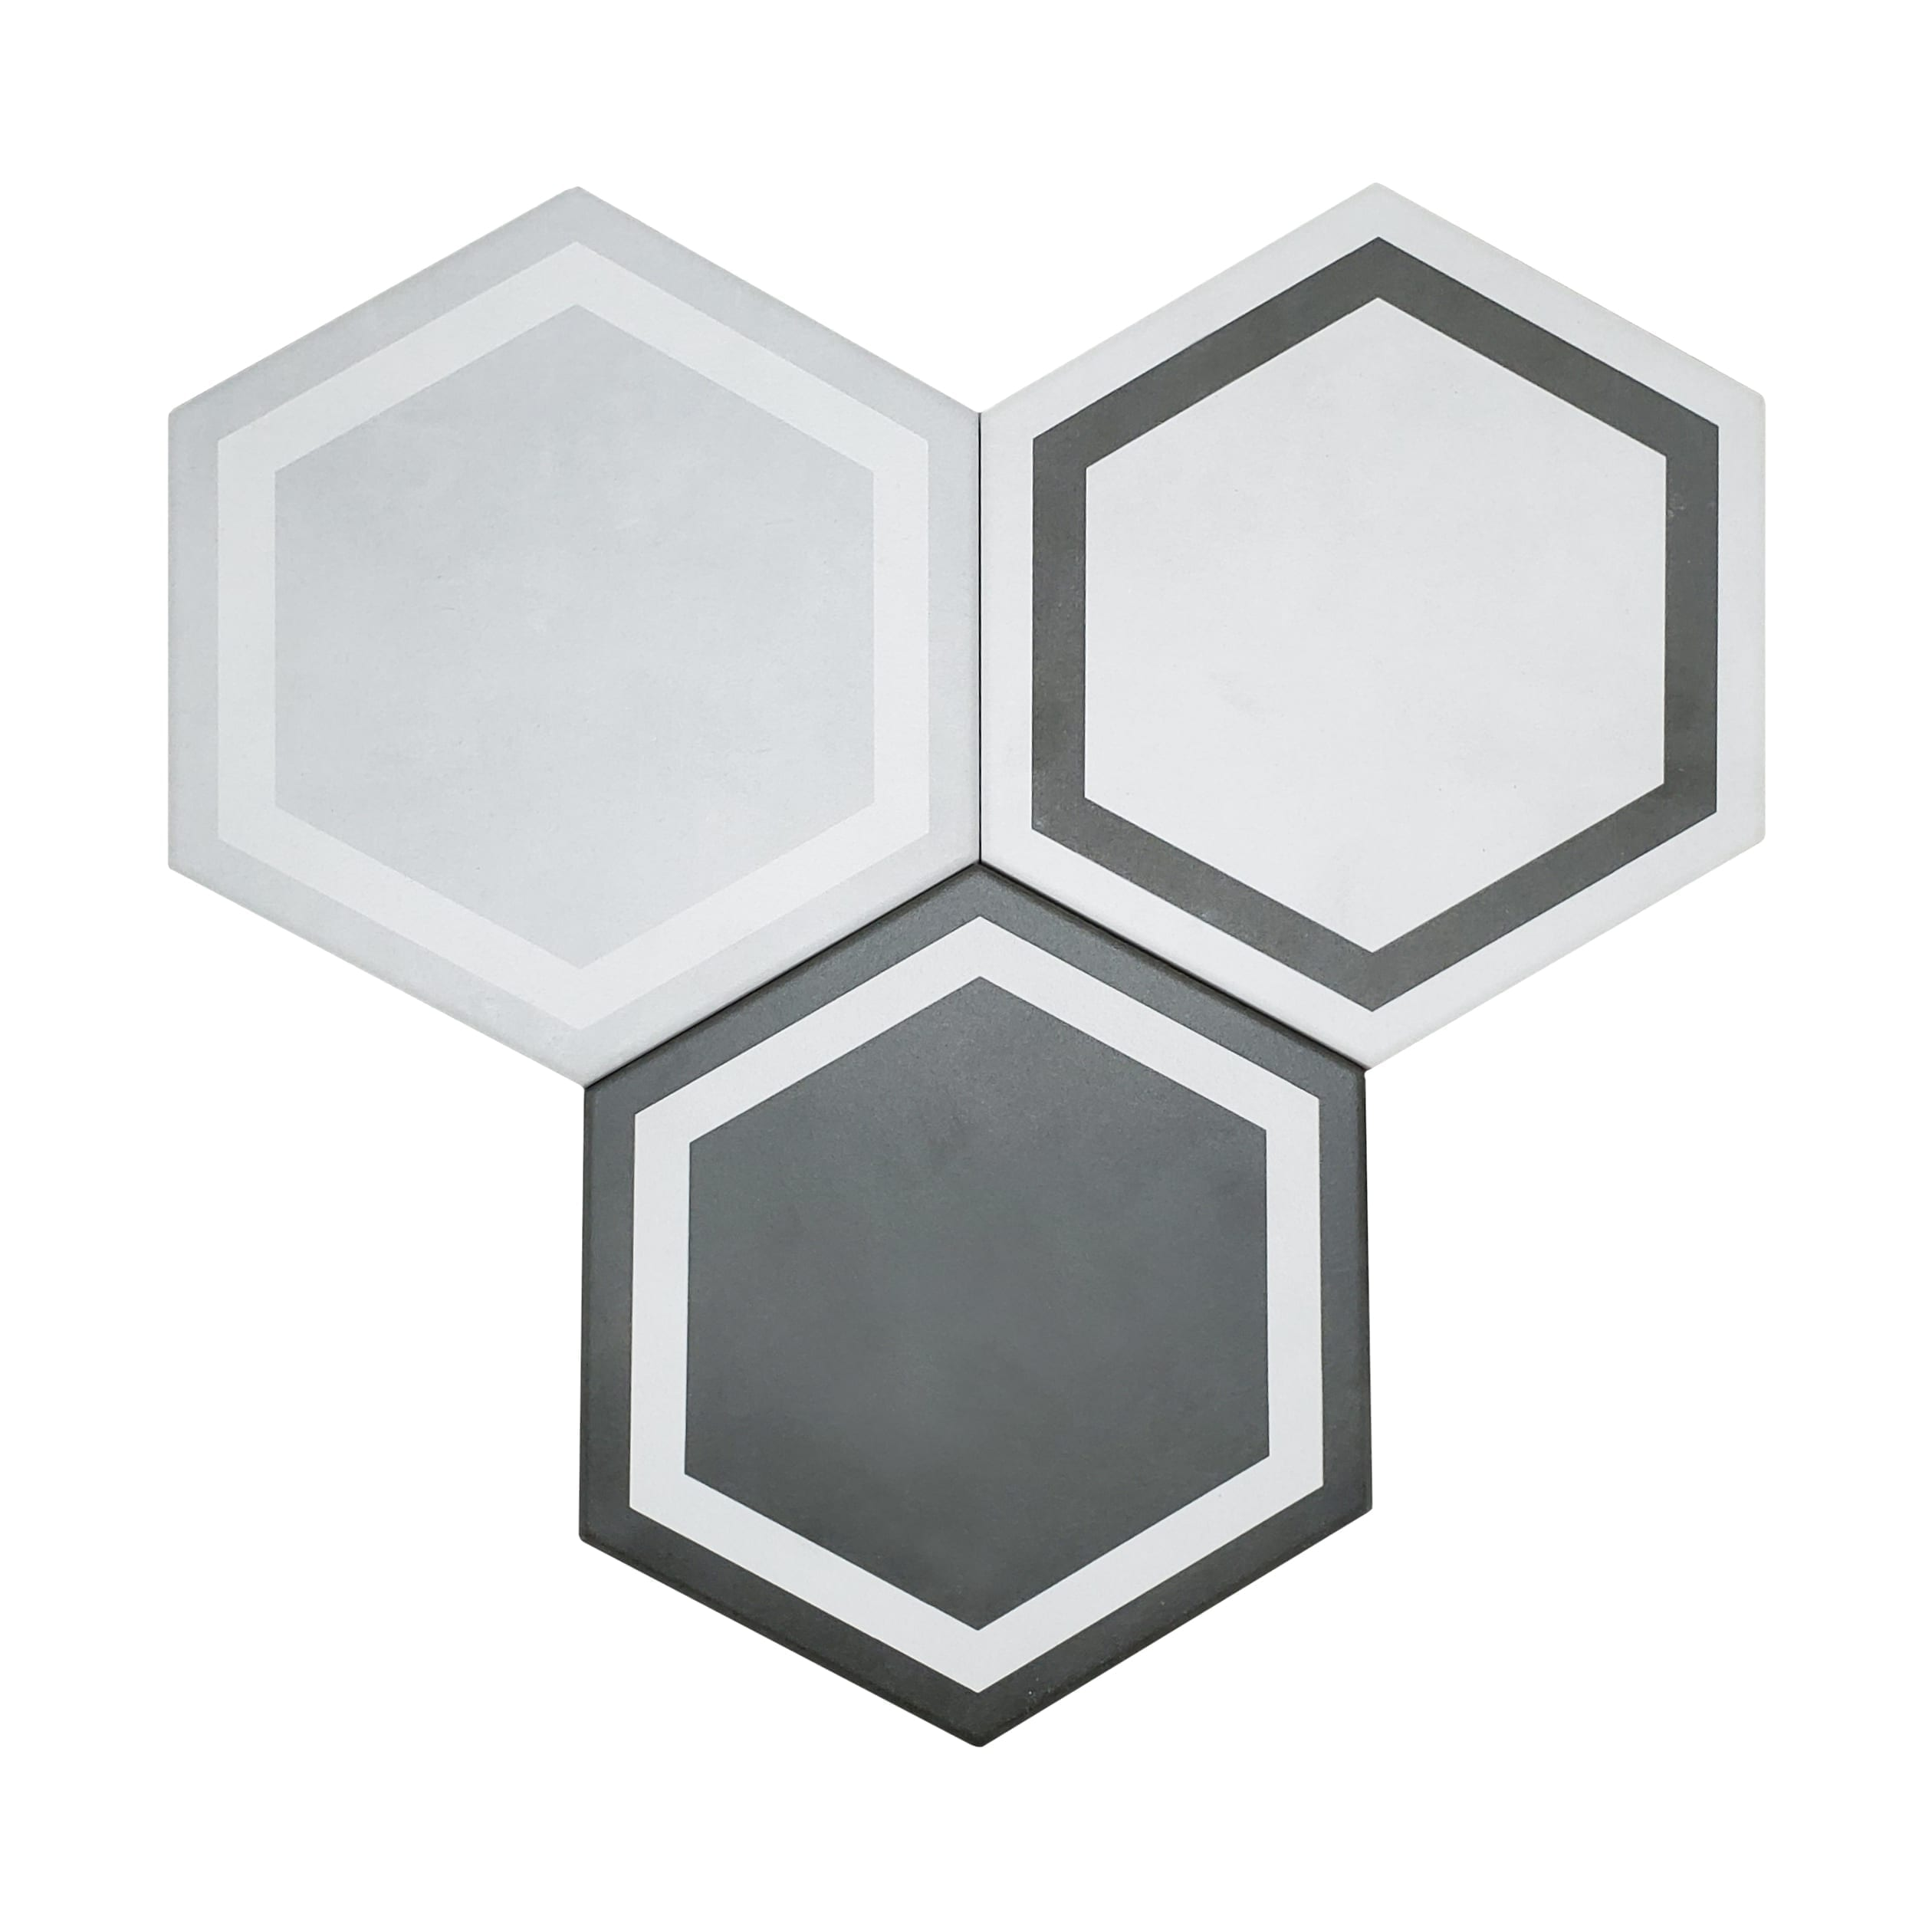 7×8 Form Hexagon Wall or Floor_GraphiteMix-3.89